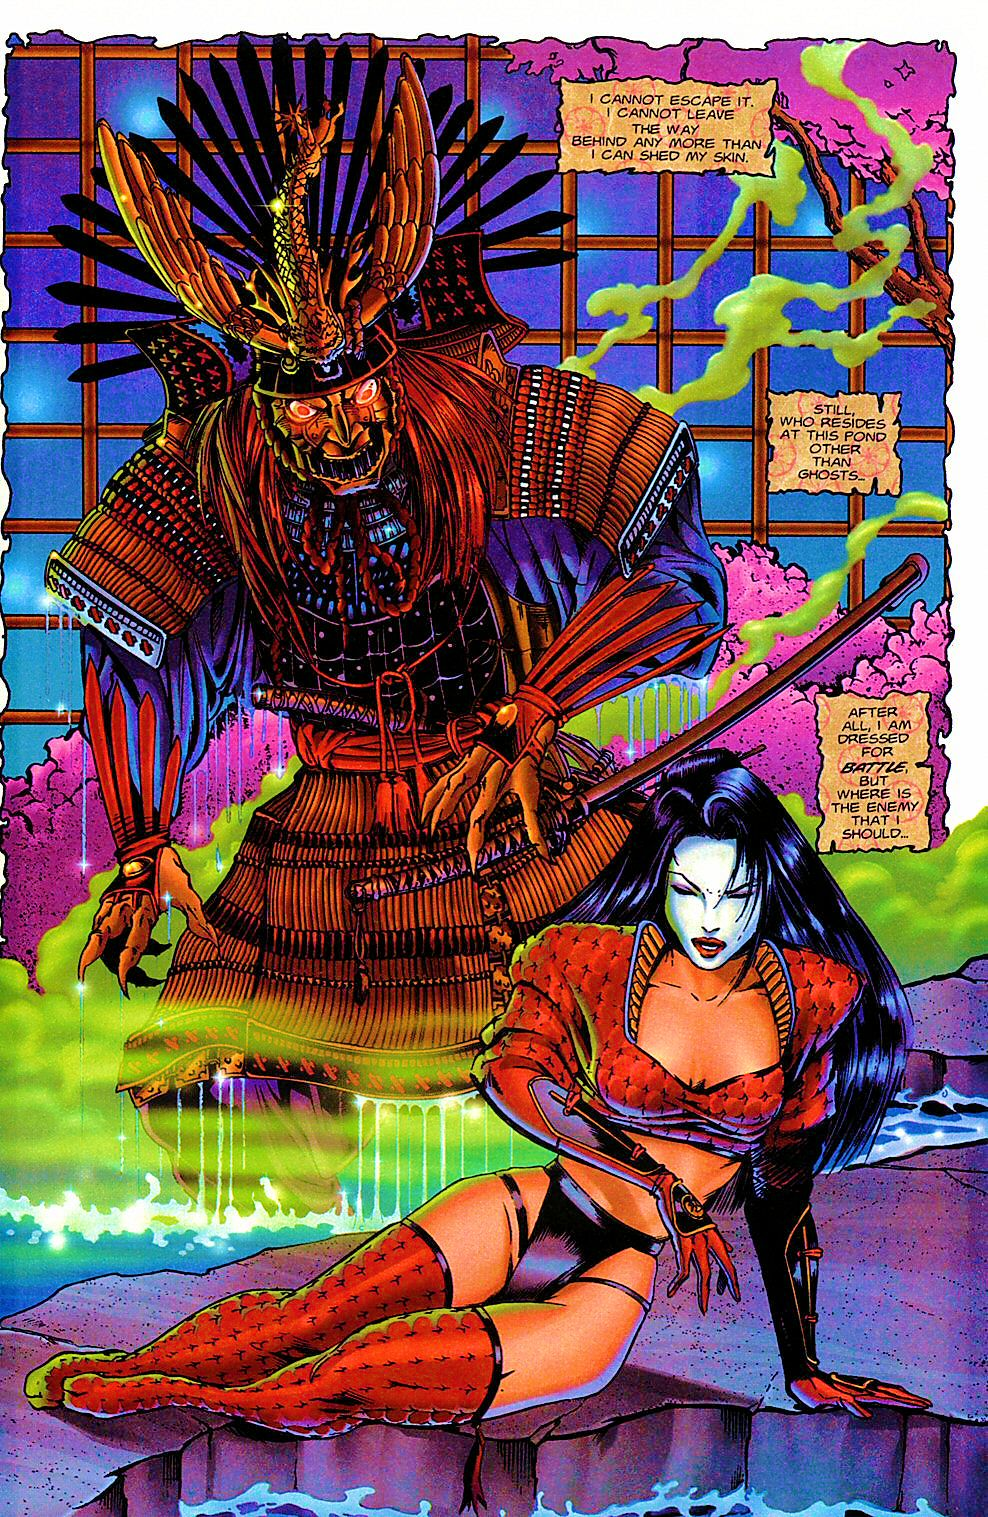 Read online Shi: The Way of the Warrior comic -  Issue #5 - 15